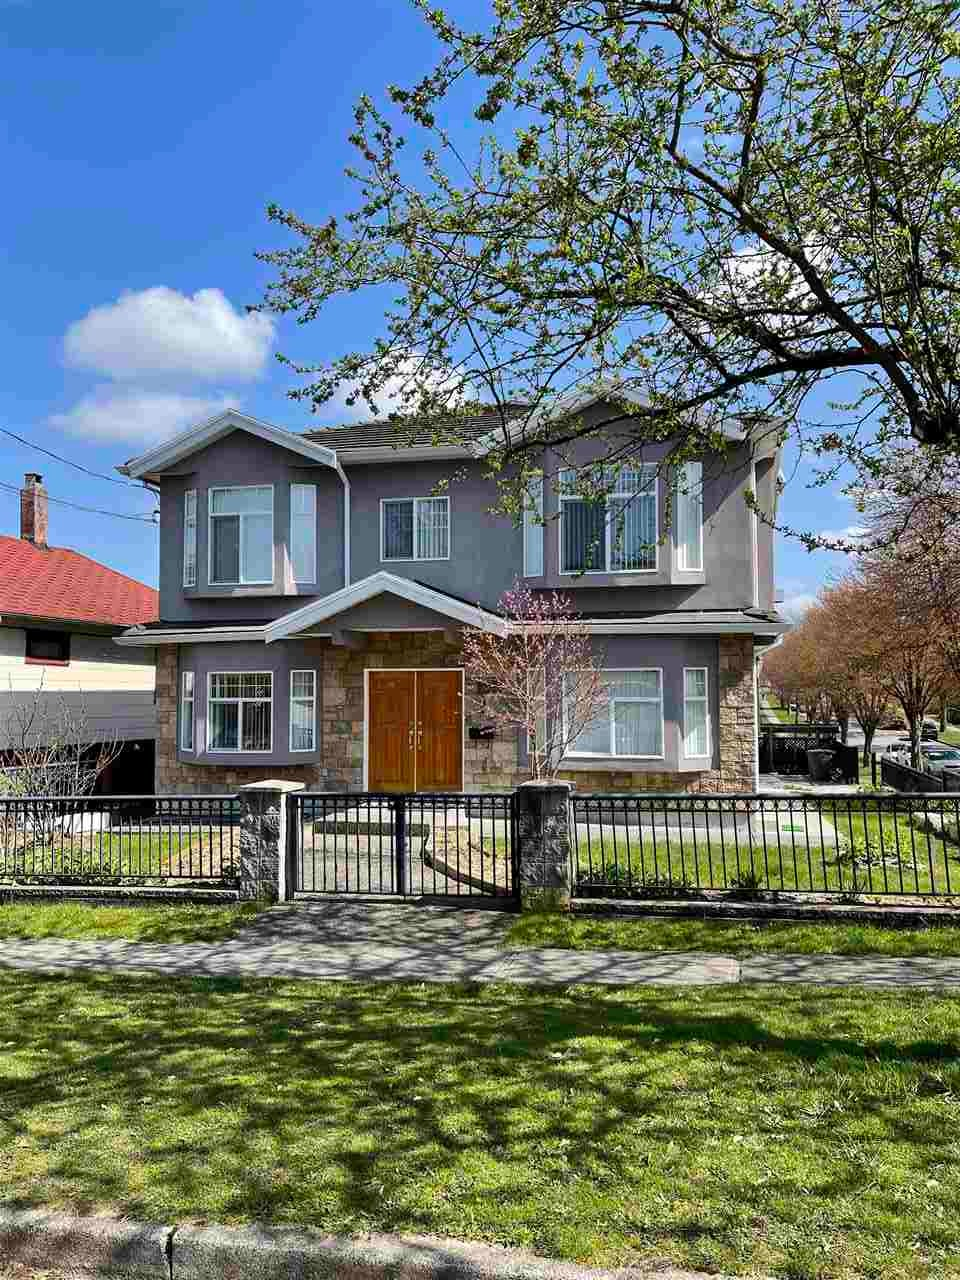 4988 COMMERCIAL STREET - Victoria VE House/Single Family for sale, 9 Bedrooms (R2562848) - #1